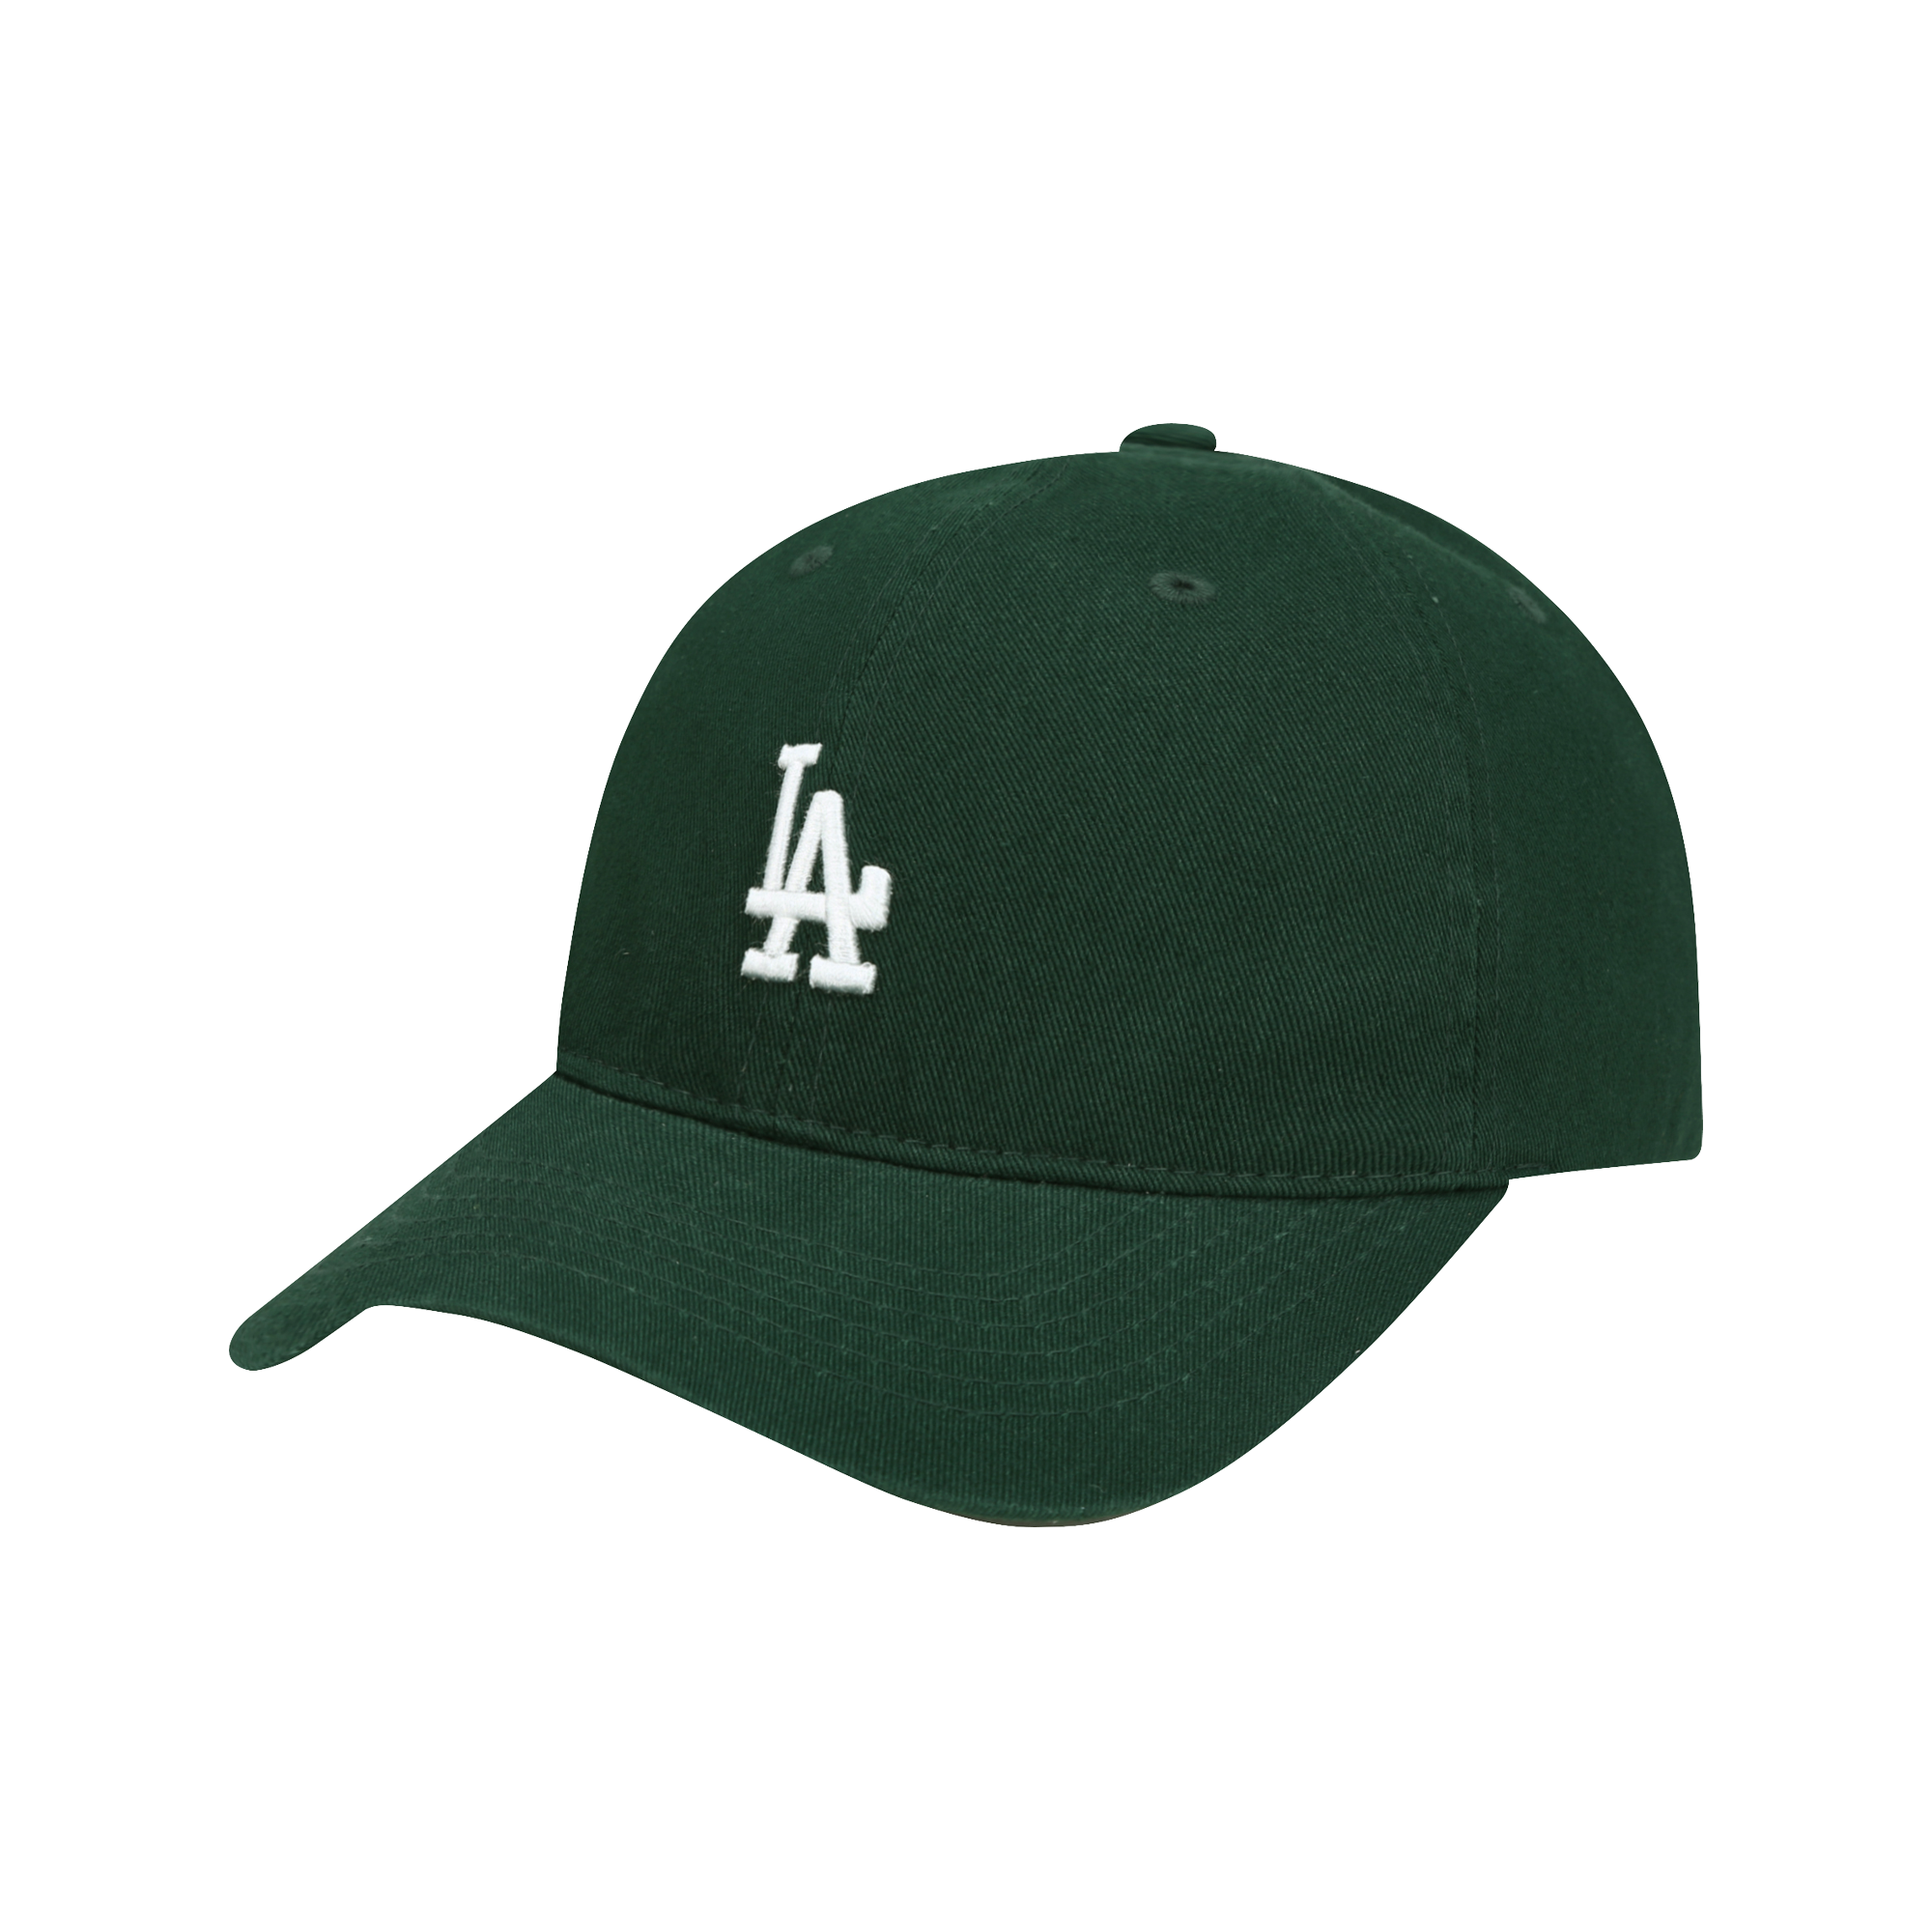 LA DODGERS ROOKIE BALL CAP